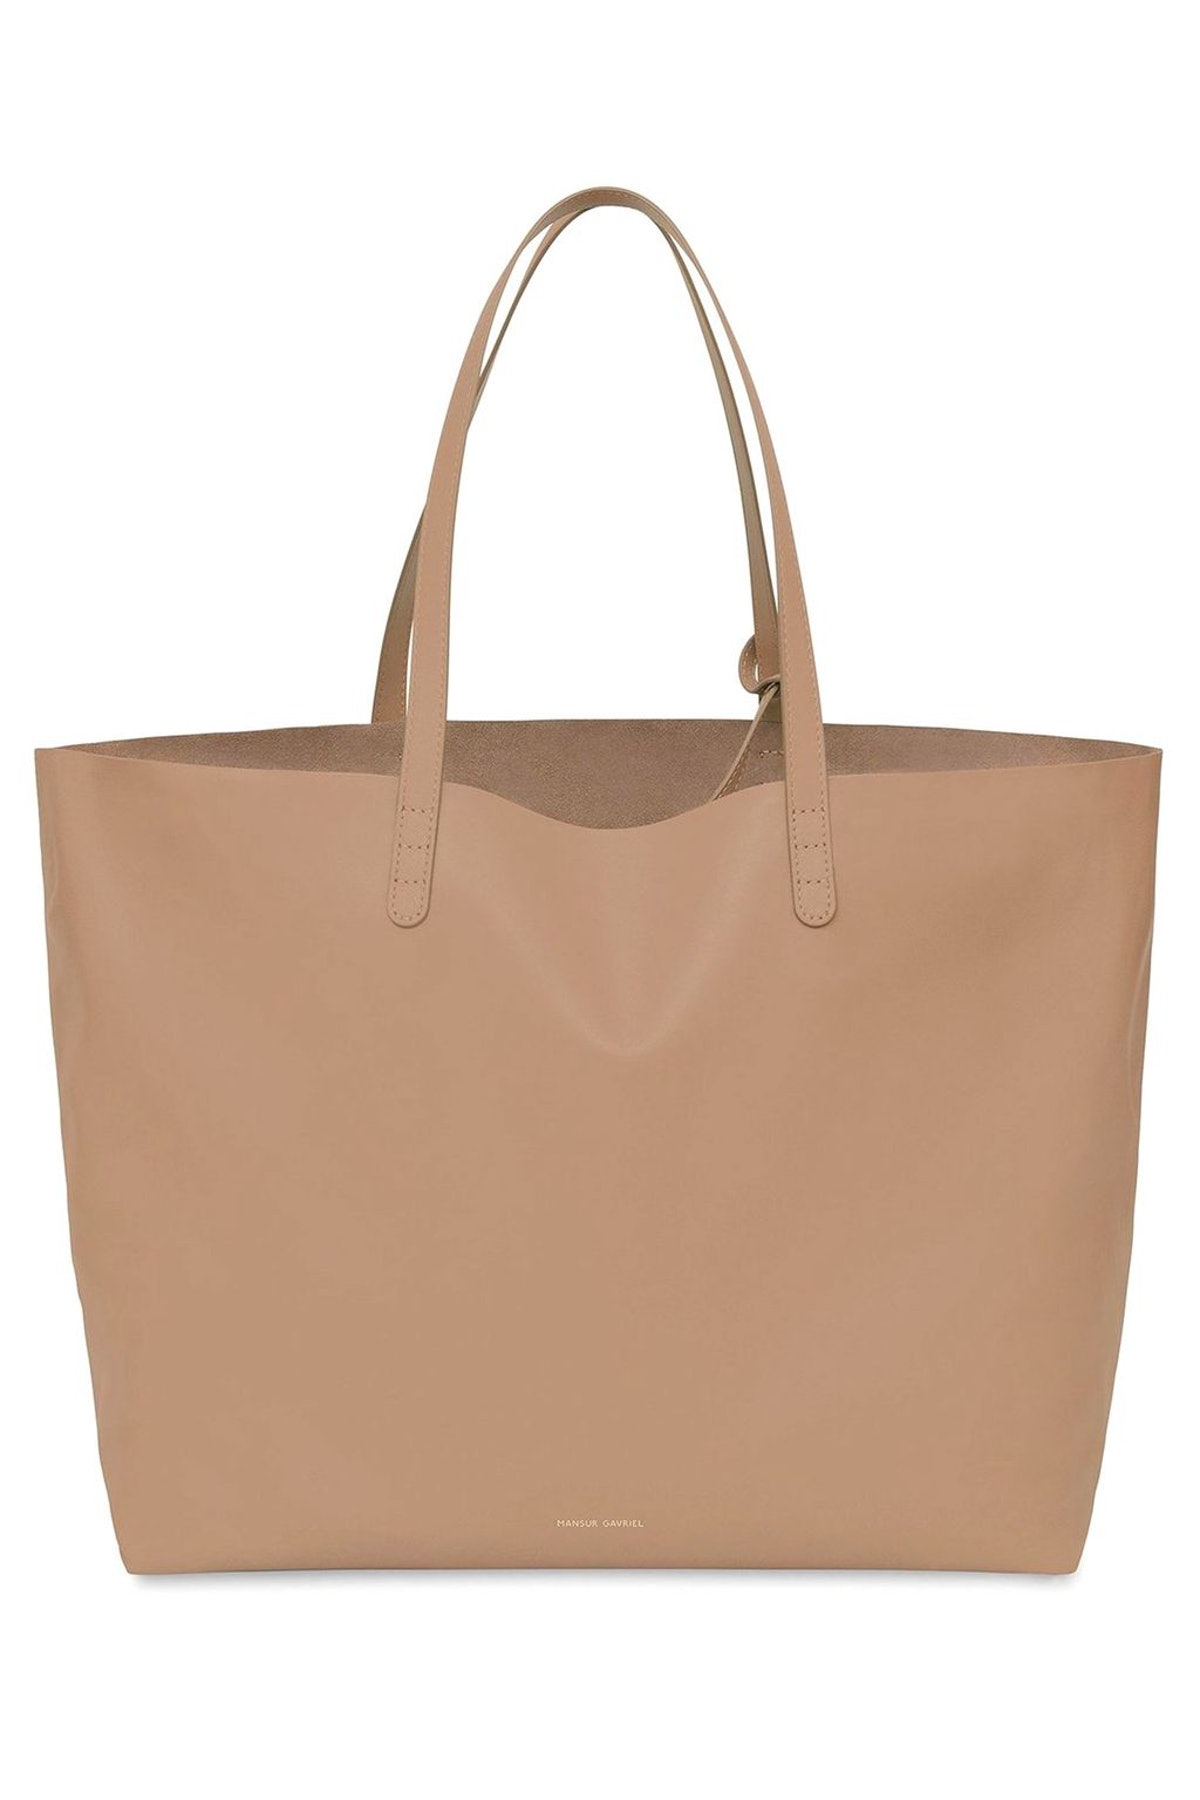 Oversized Tote in Biscotto: image 1